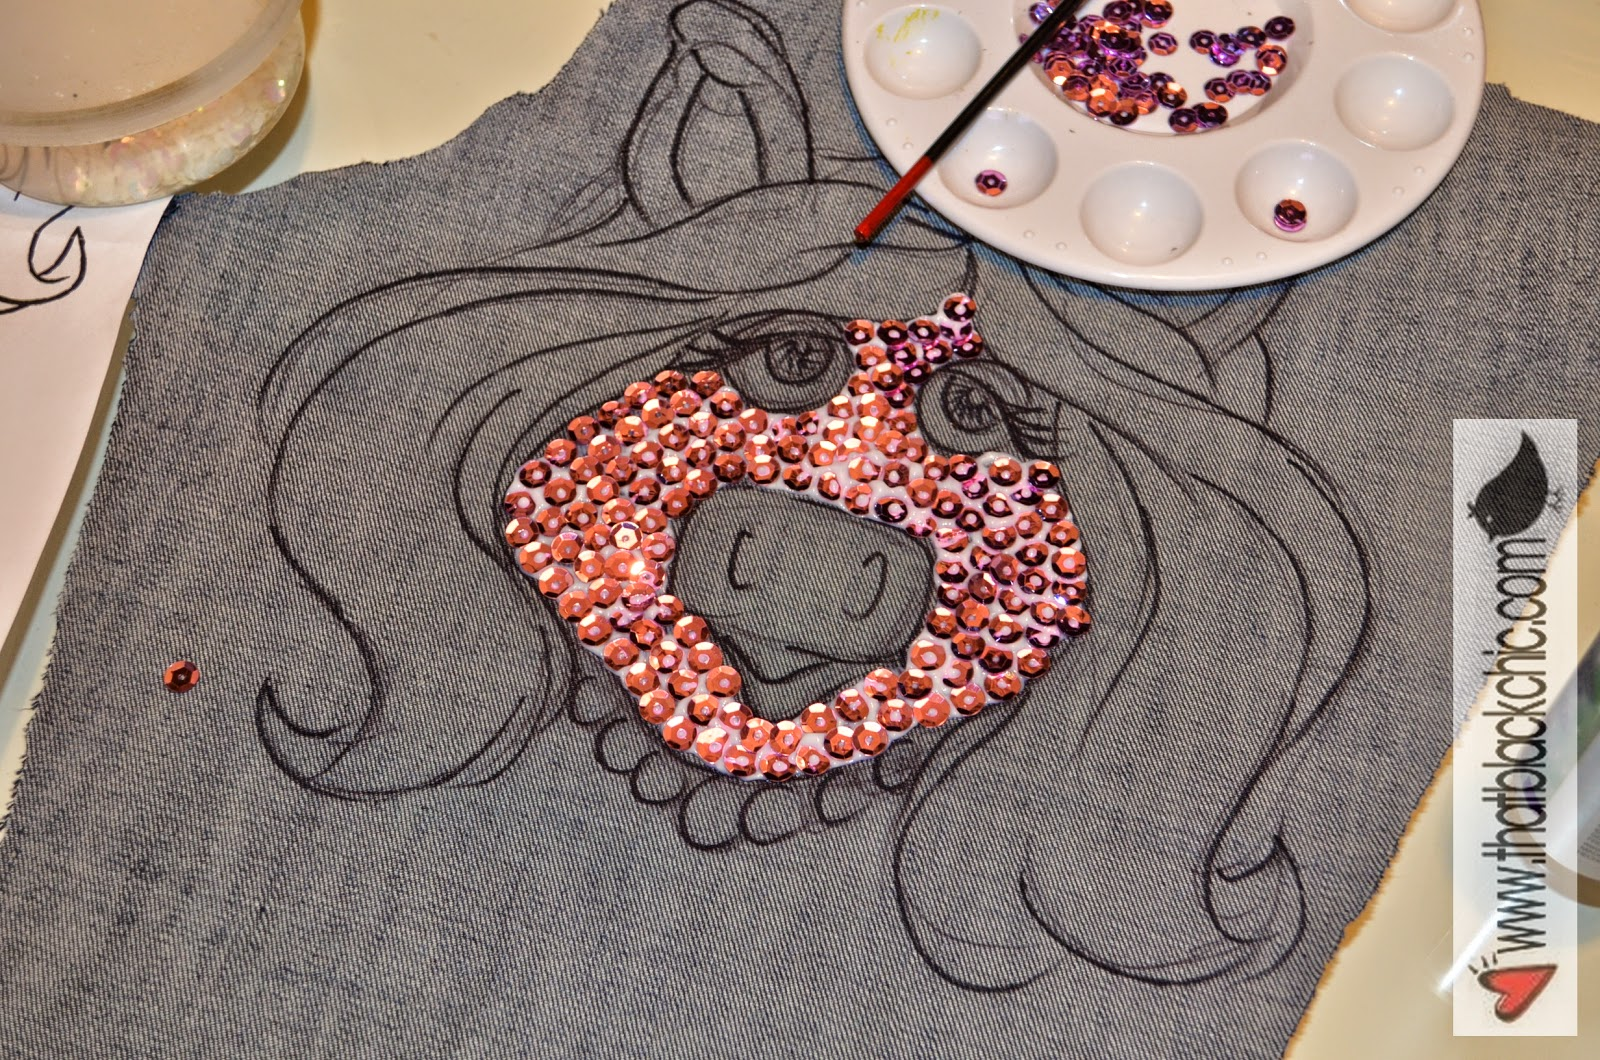 Miss Piggy Hand Made Sequin Jacket Applique That Black Chic